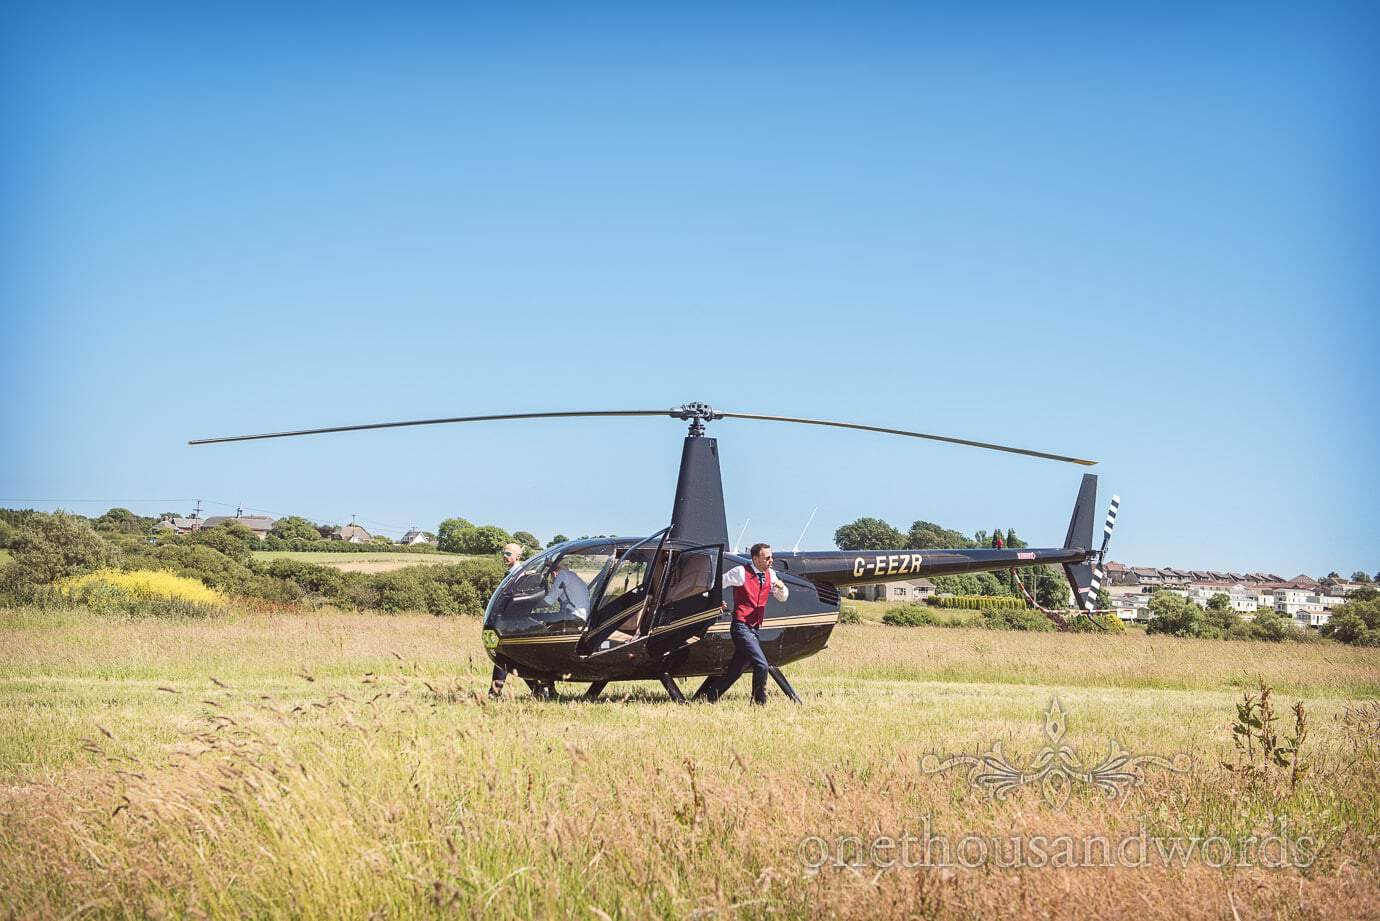 Grooms dramatically exit wedding helicopter in Swanage countryside field